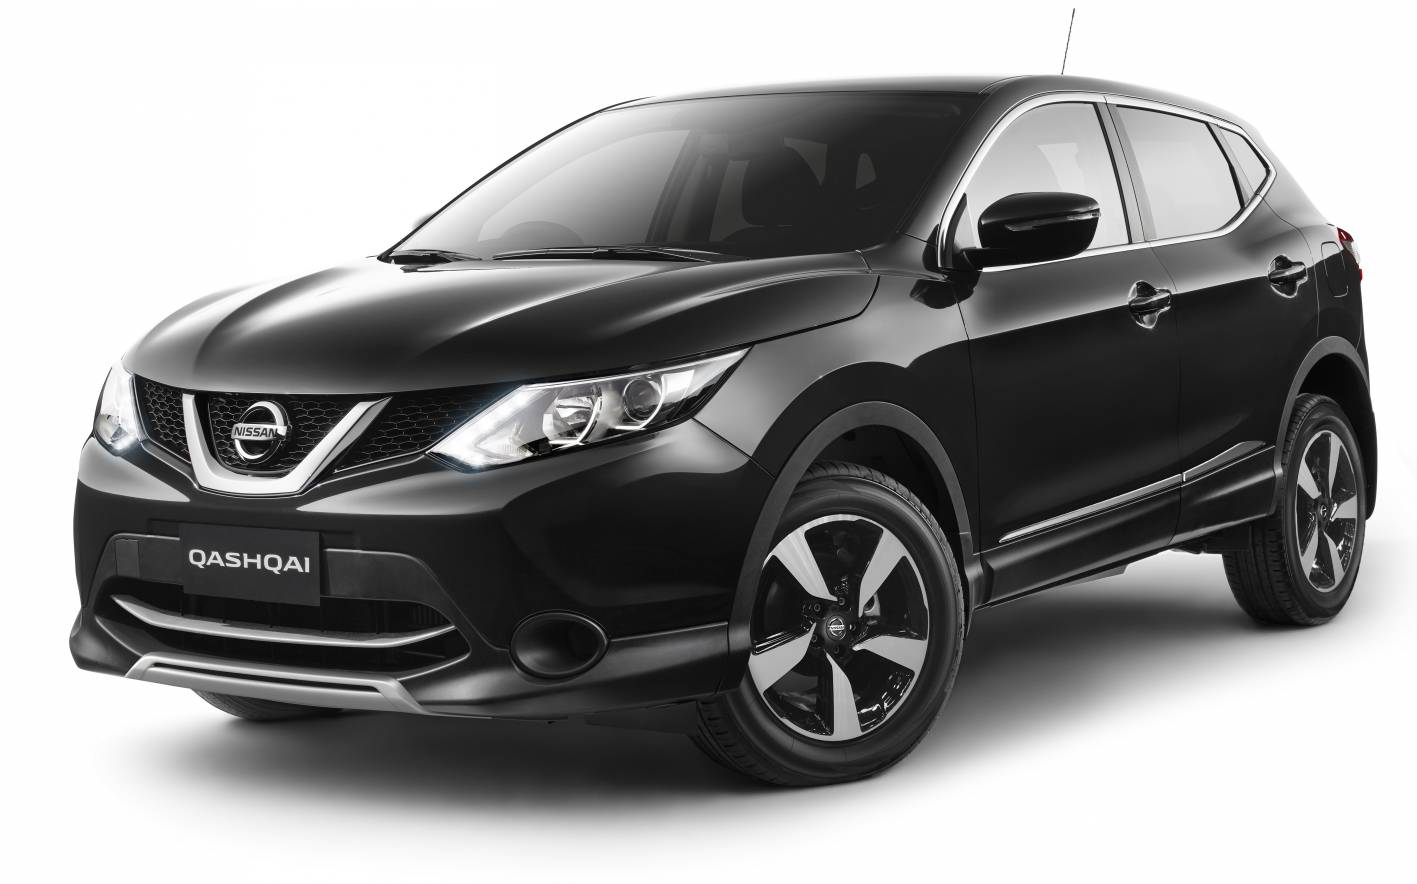 nissan upgrades qashqai n sport with special edition. Black Bedroom Furniture Sets. Home Design Ideas